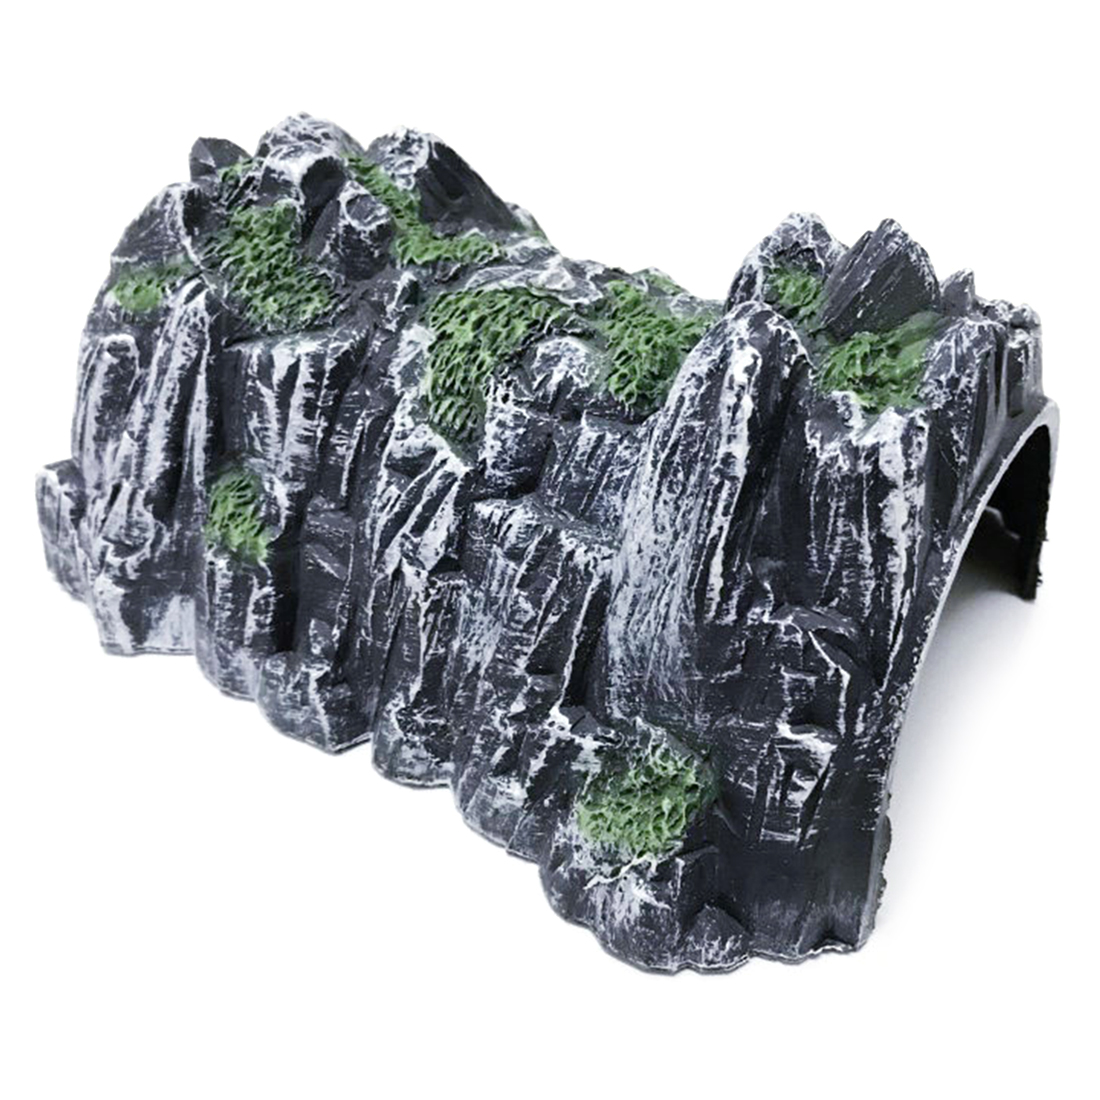 1:150-1:200 N Scale 17.8cm Cave Tunnel Model For DIY Architectural Sand Table Tree Miniatures Landscape Decor